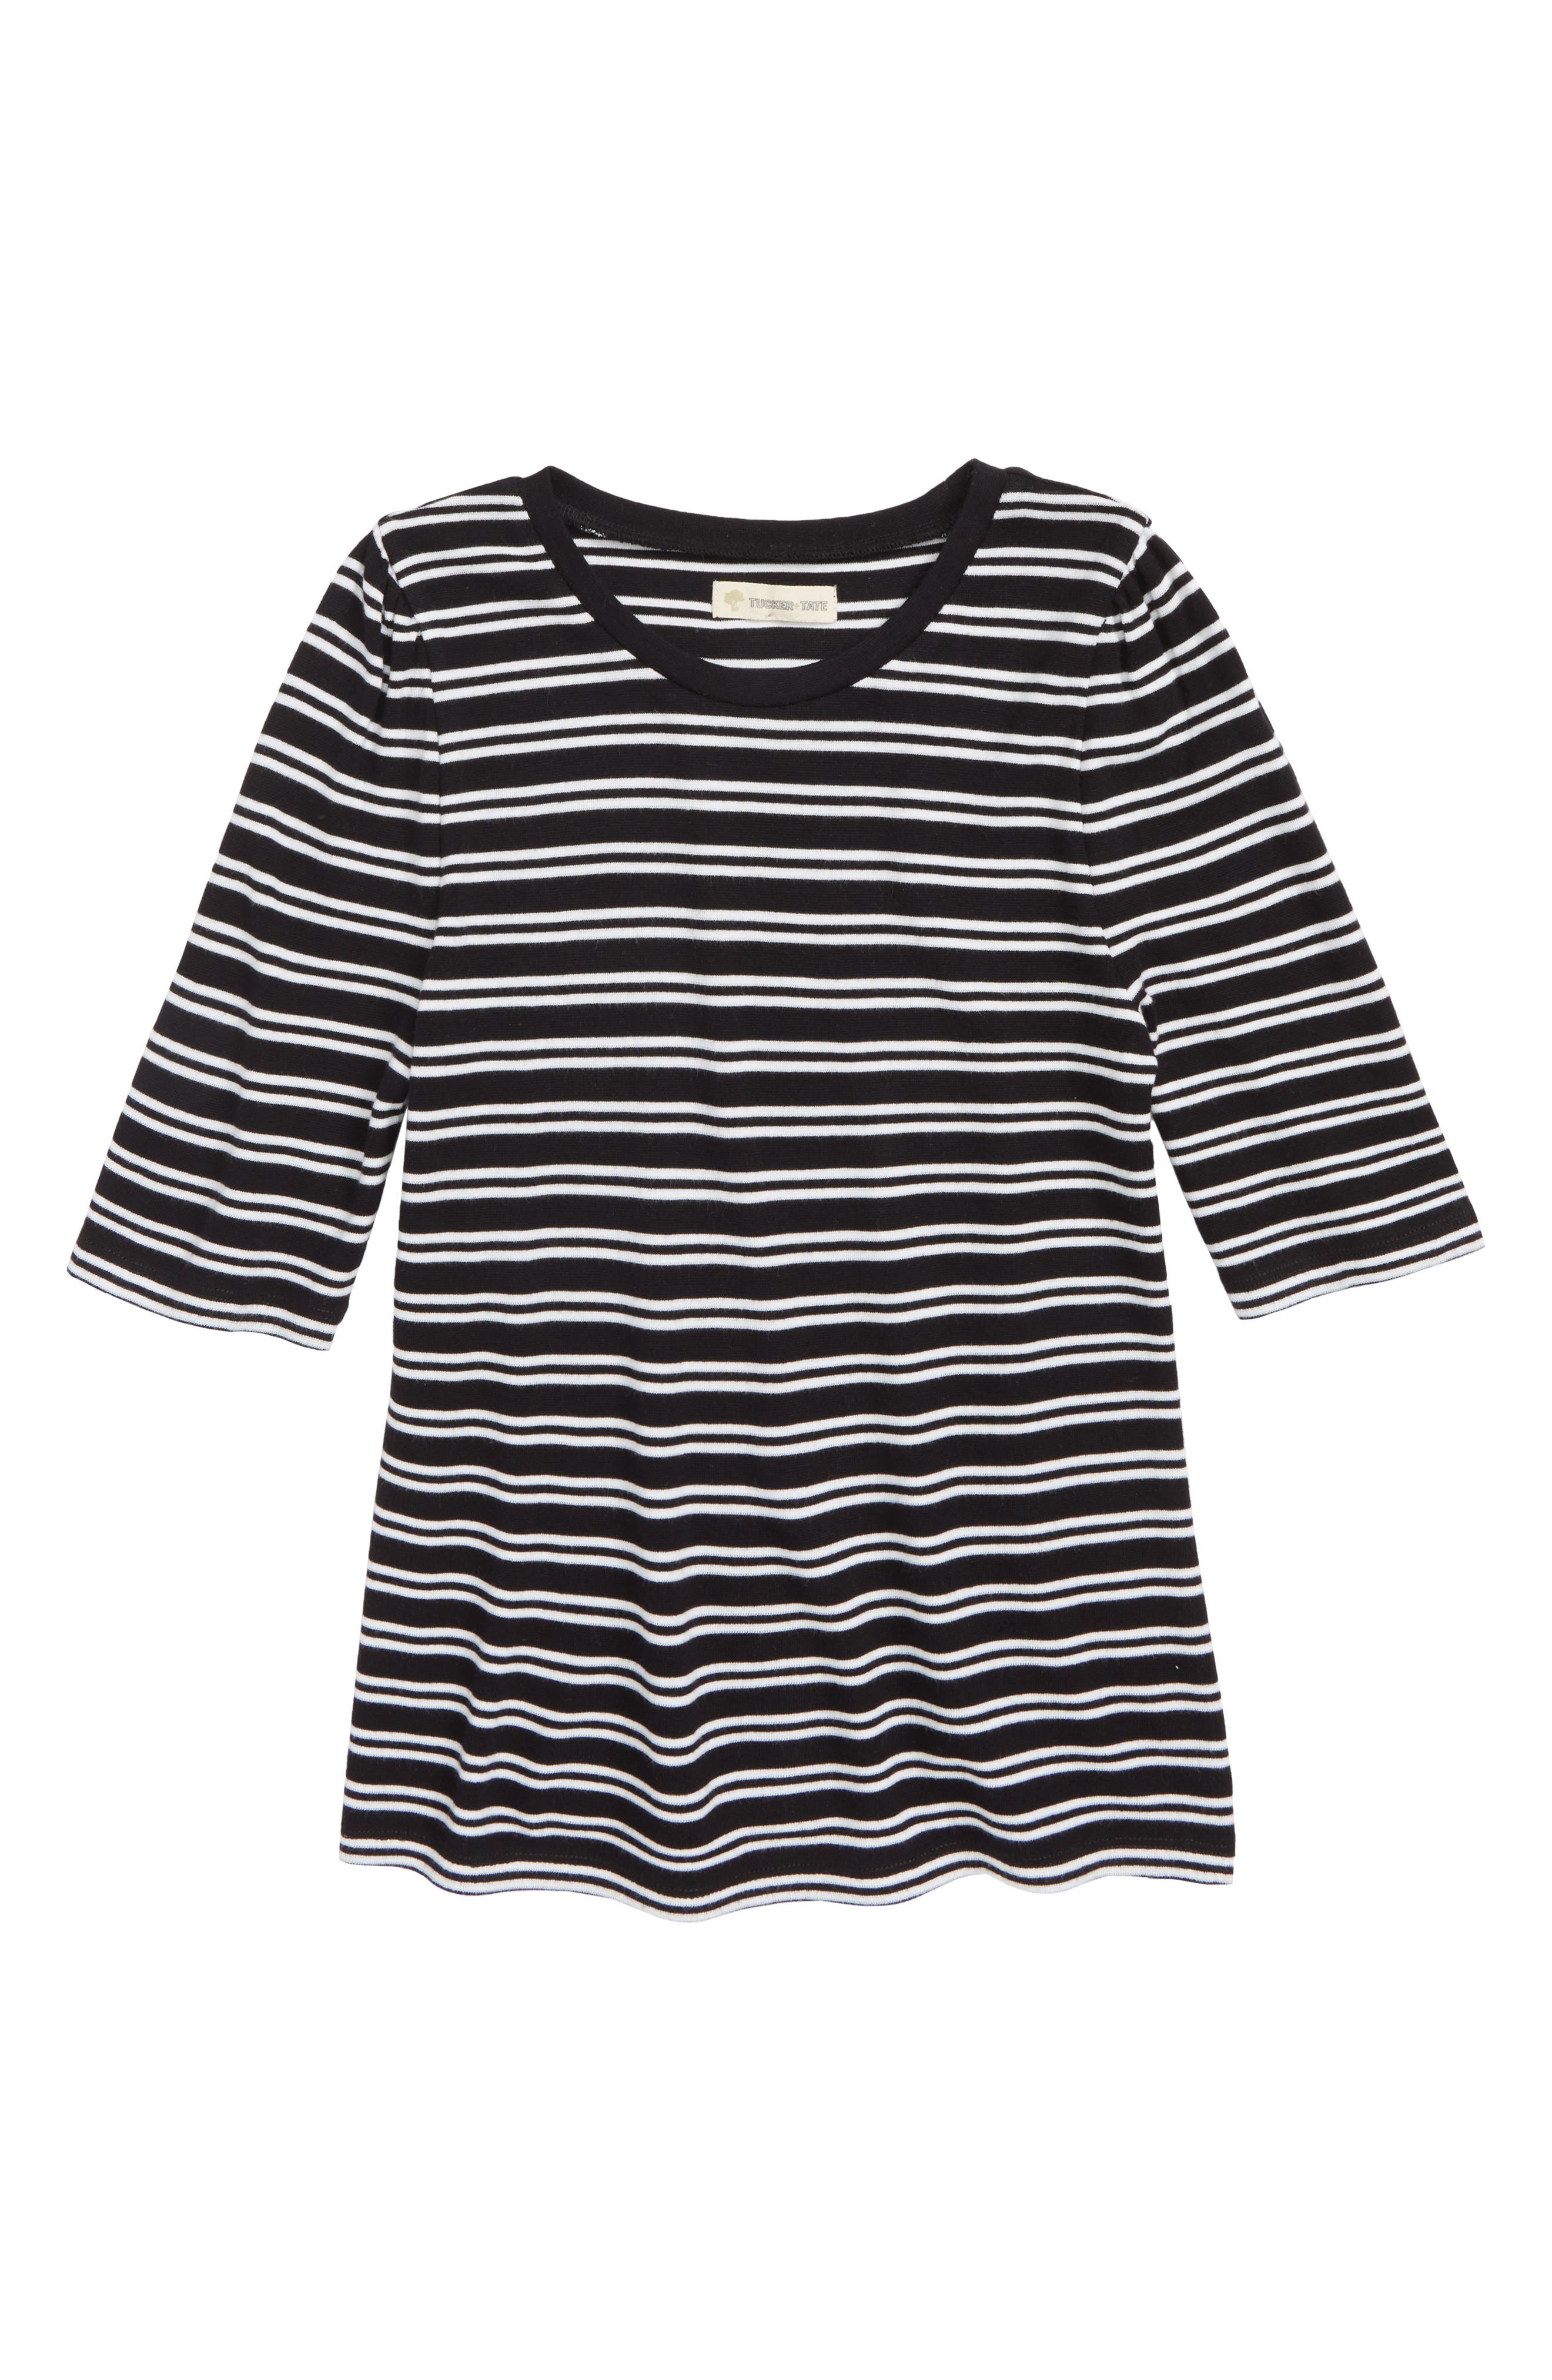 Stripe Puff Sleeve Tee,                             Main thumbnail 1, color,                             001